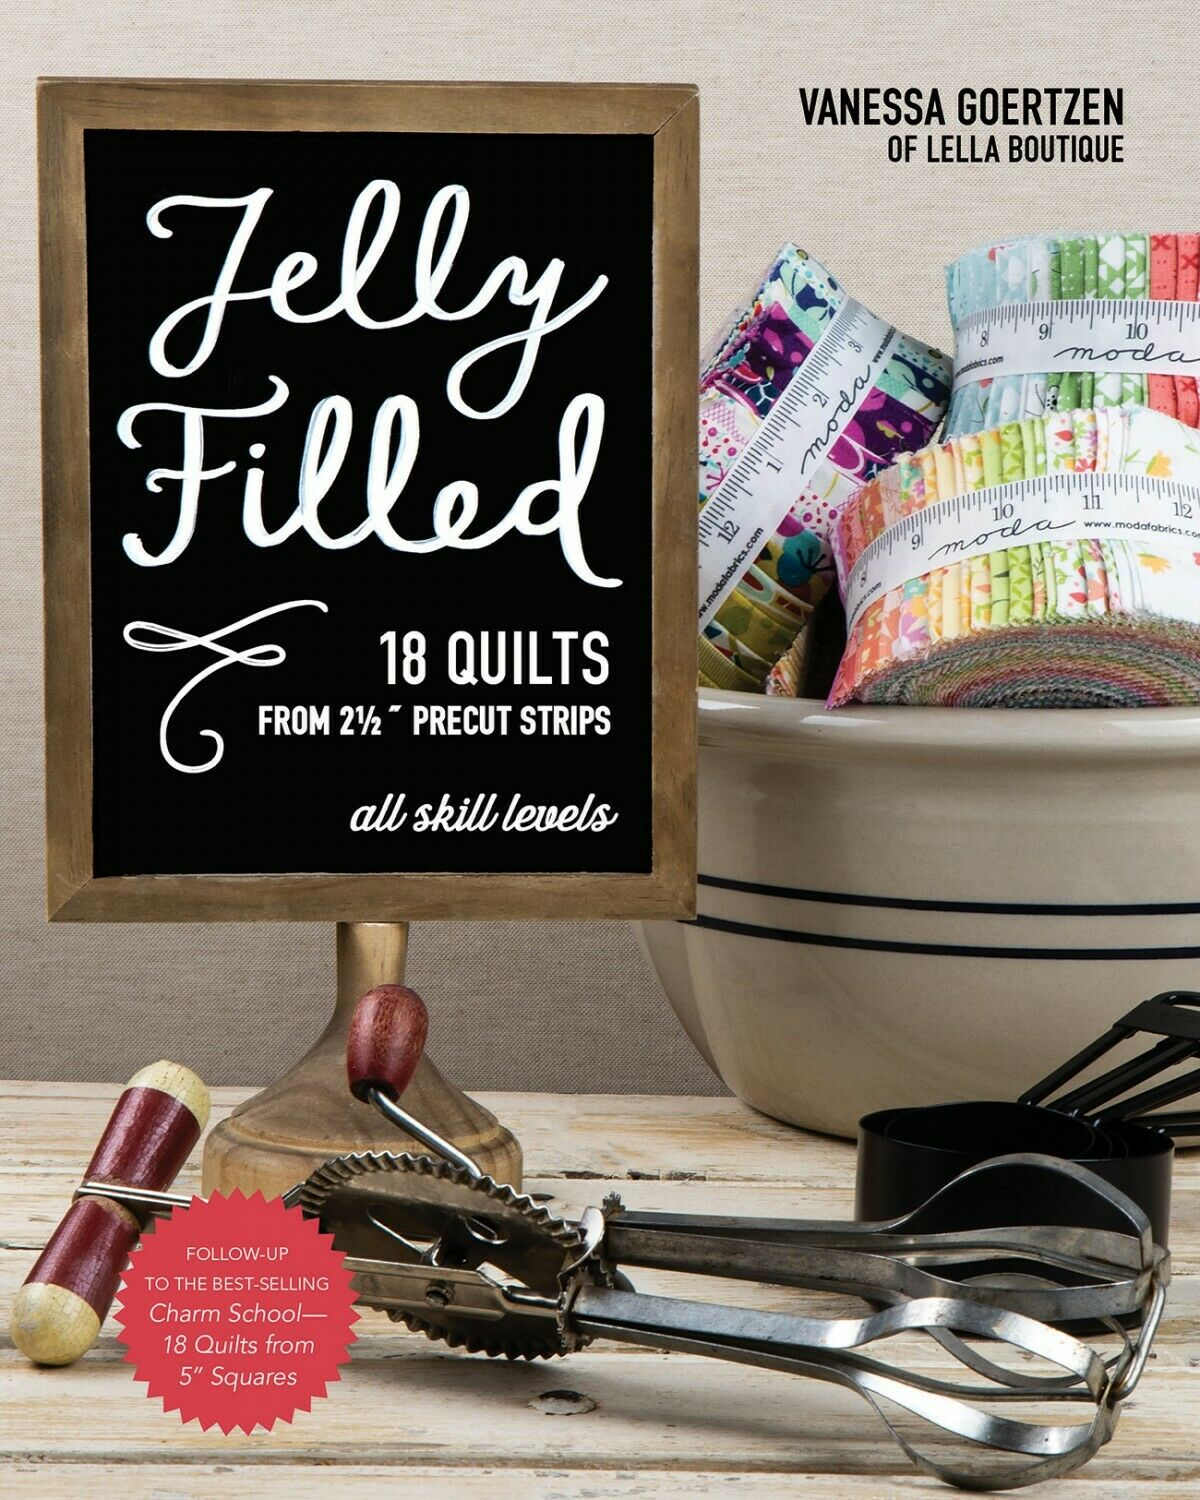 Jelly Filled 18 Quilts From 2 1/2 Strips Book by Vanessa Goertzen